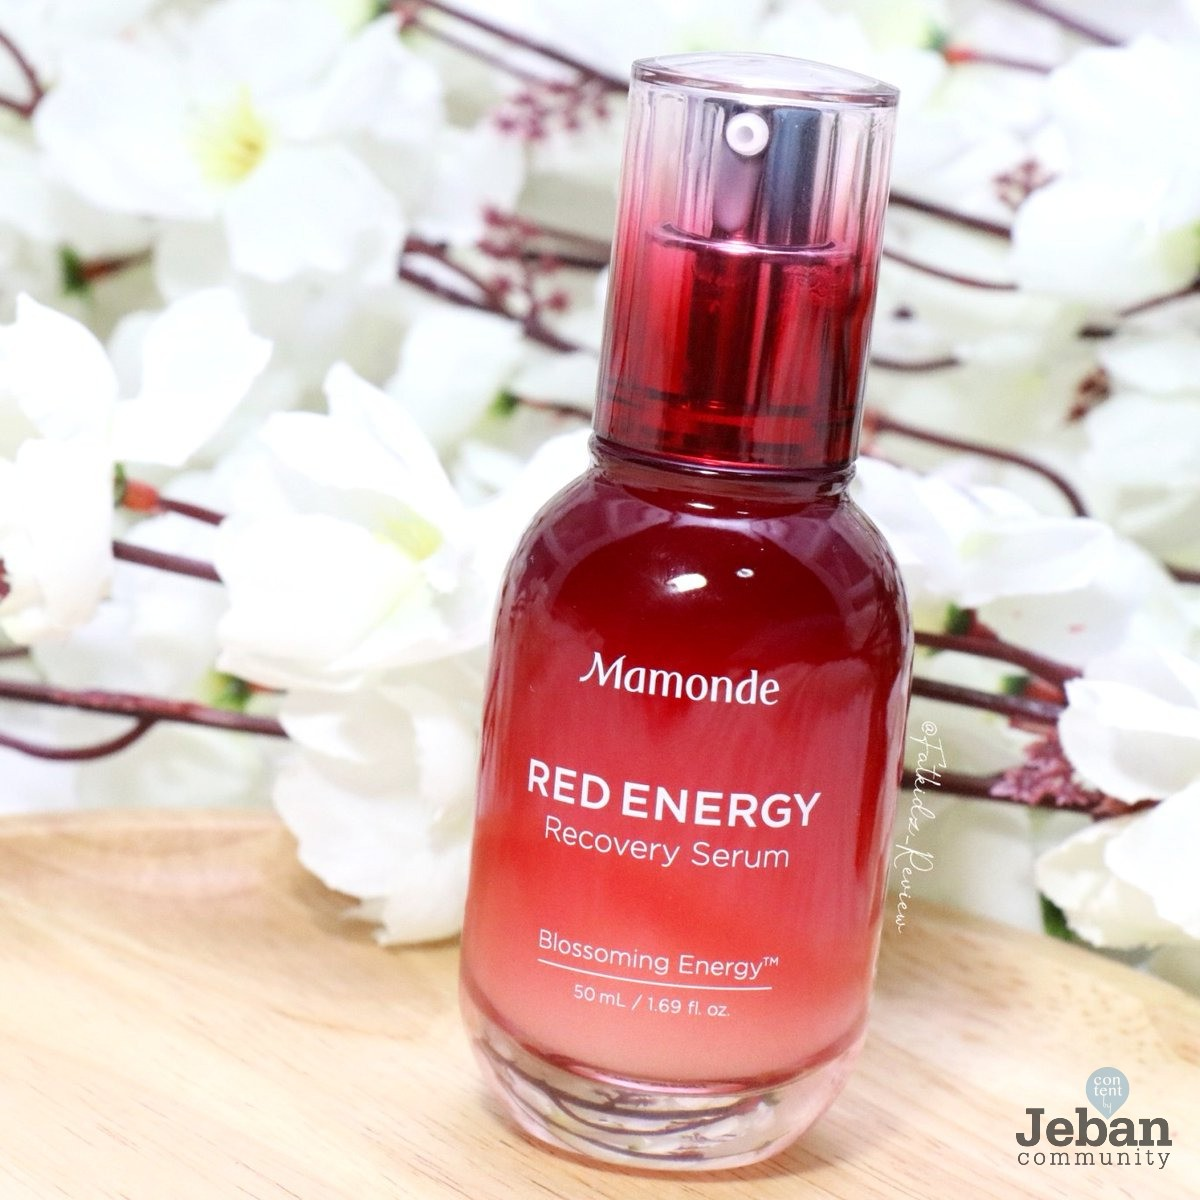 Red Energy Recovery Serum by Mamonde #9